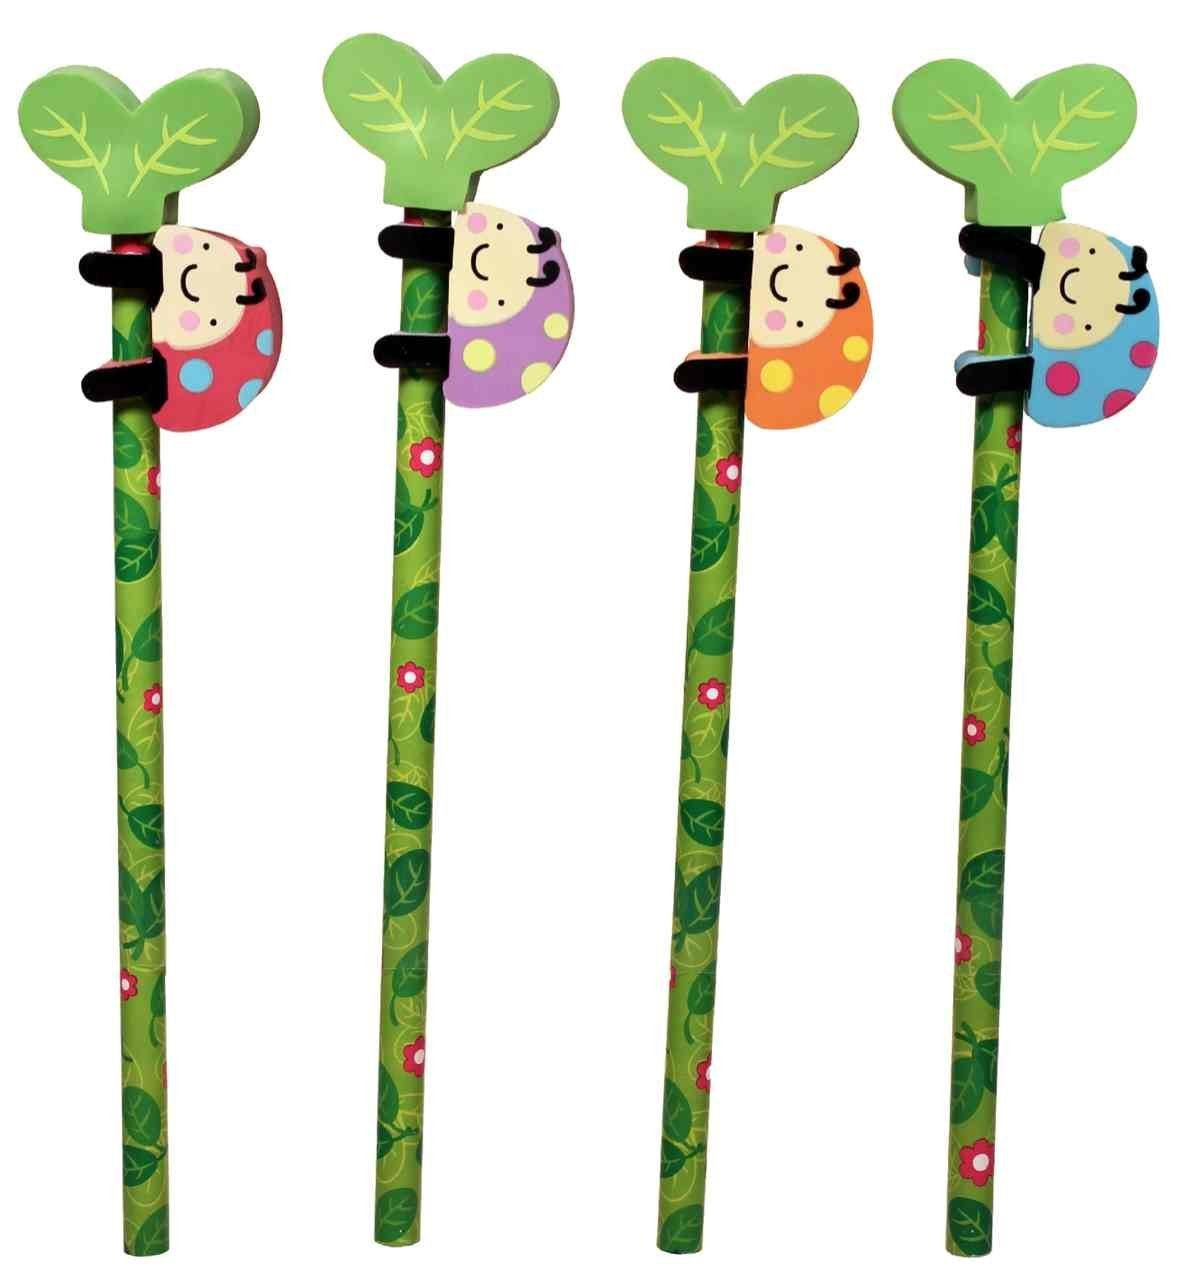 Ladybug Eraser & Pencil - Set of 4